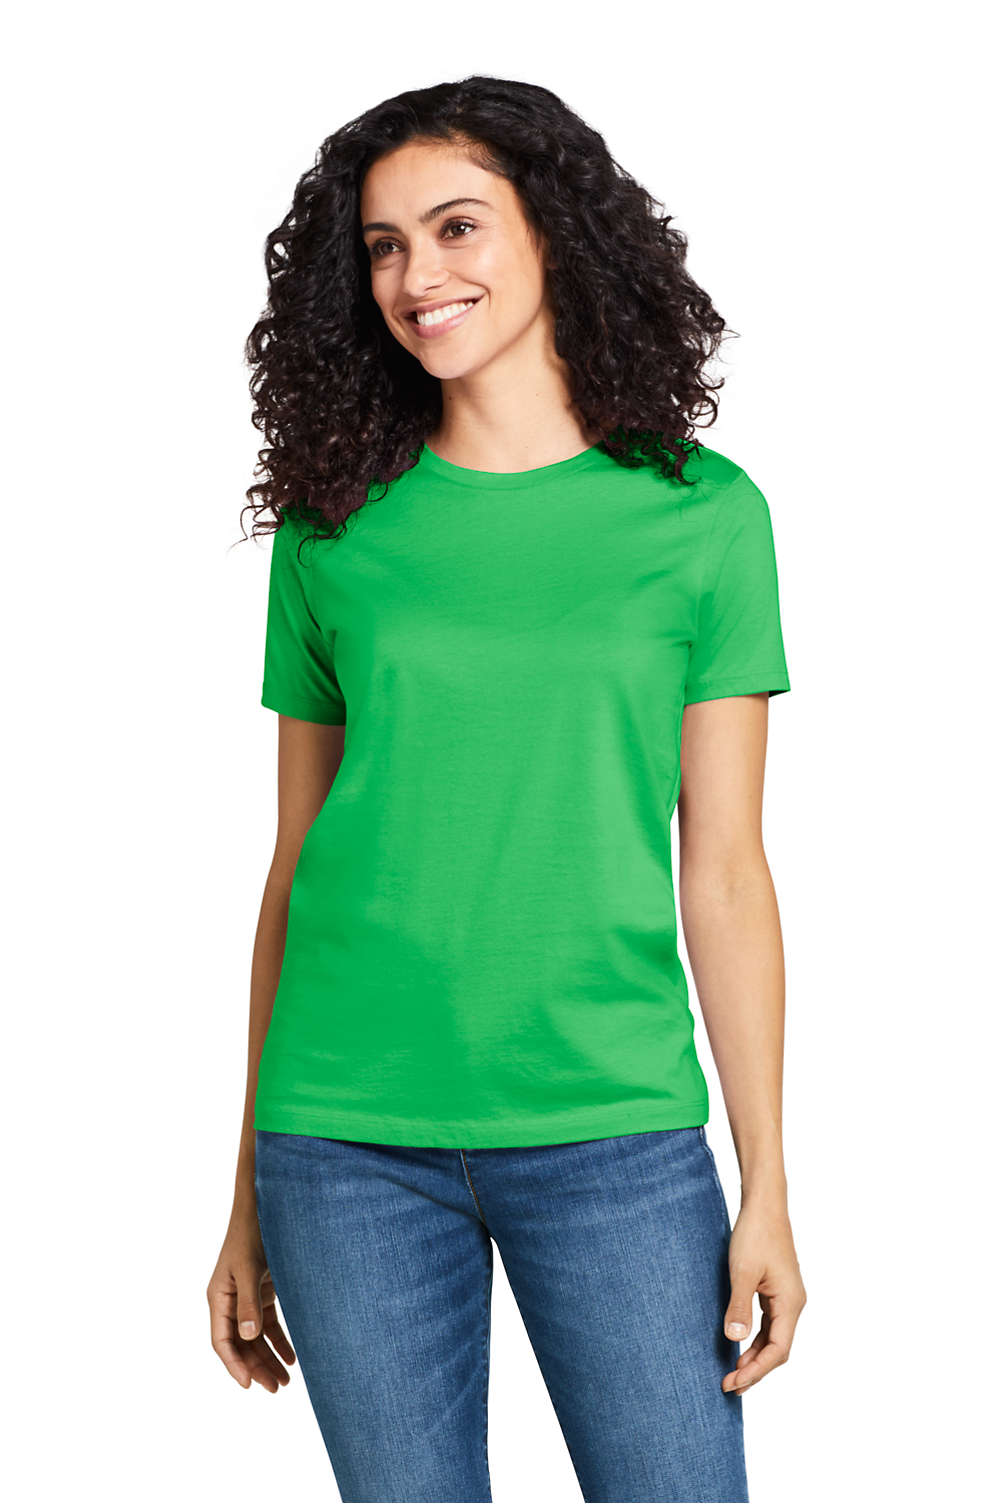 7dfe72bb Women's Relaxed Fit Supima Cotton Crewneck Short Sleeve T-shirt from ...